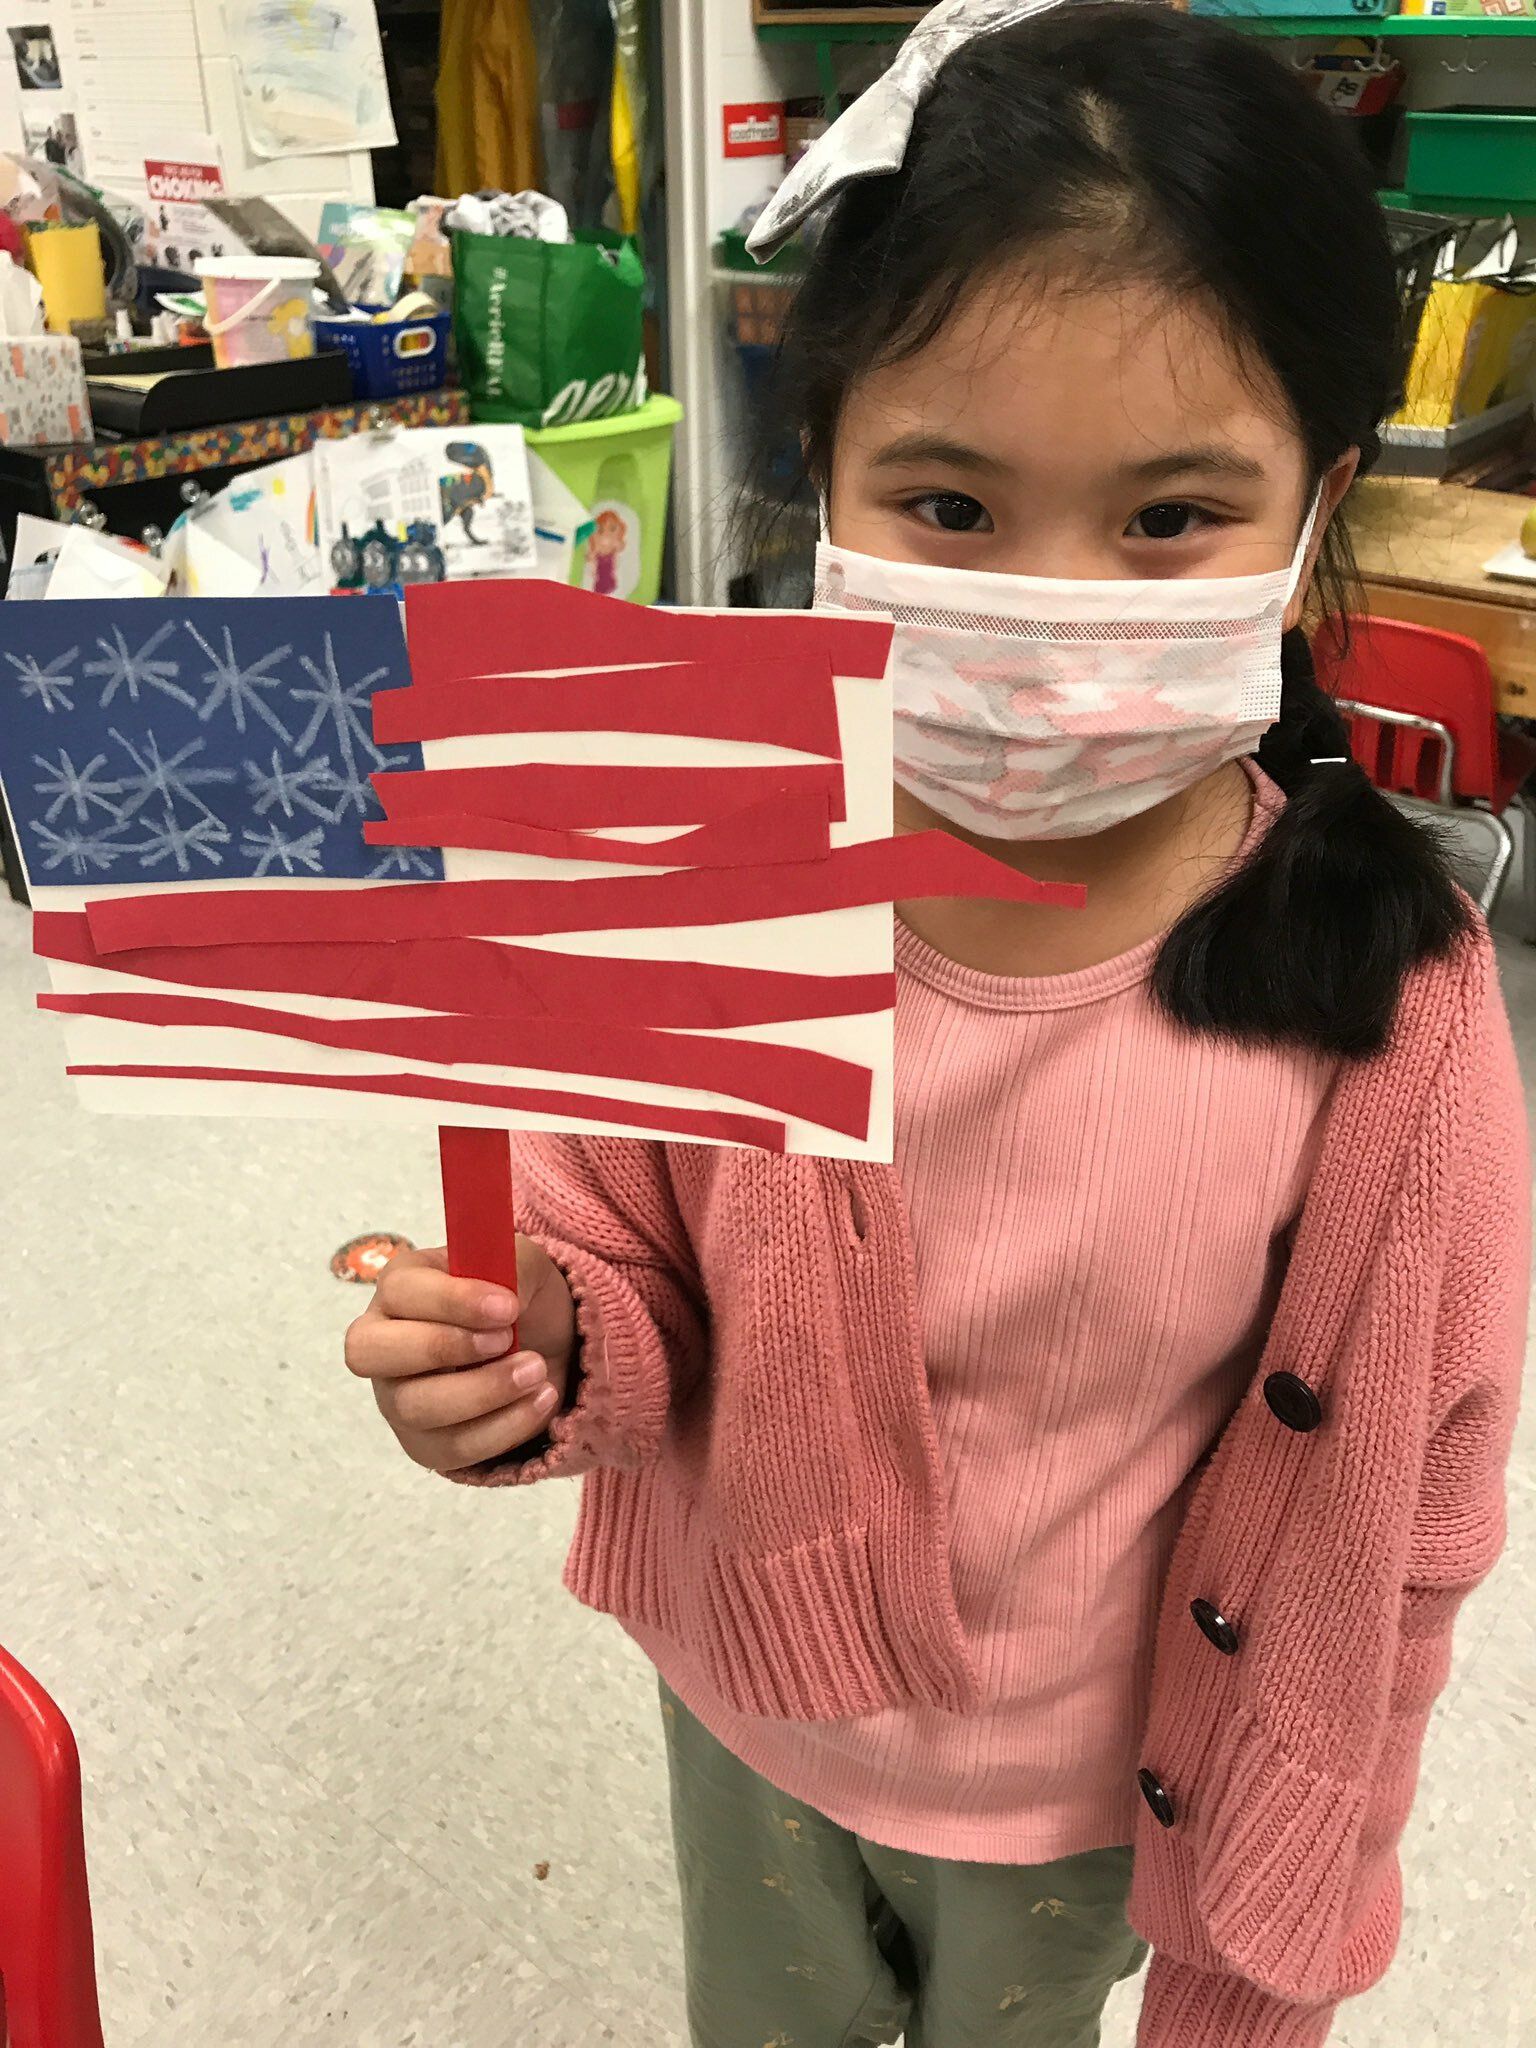 Hampton Bays Elementary School students celebrated Flag Day on June 14 with a variety of activities. Kindergartners in June Eaton's class, for example, learned more about the American flag and created their own paper flags.